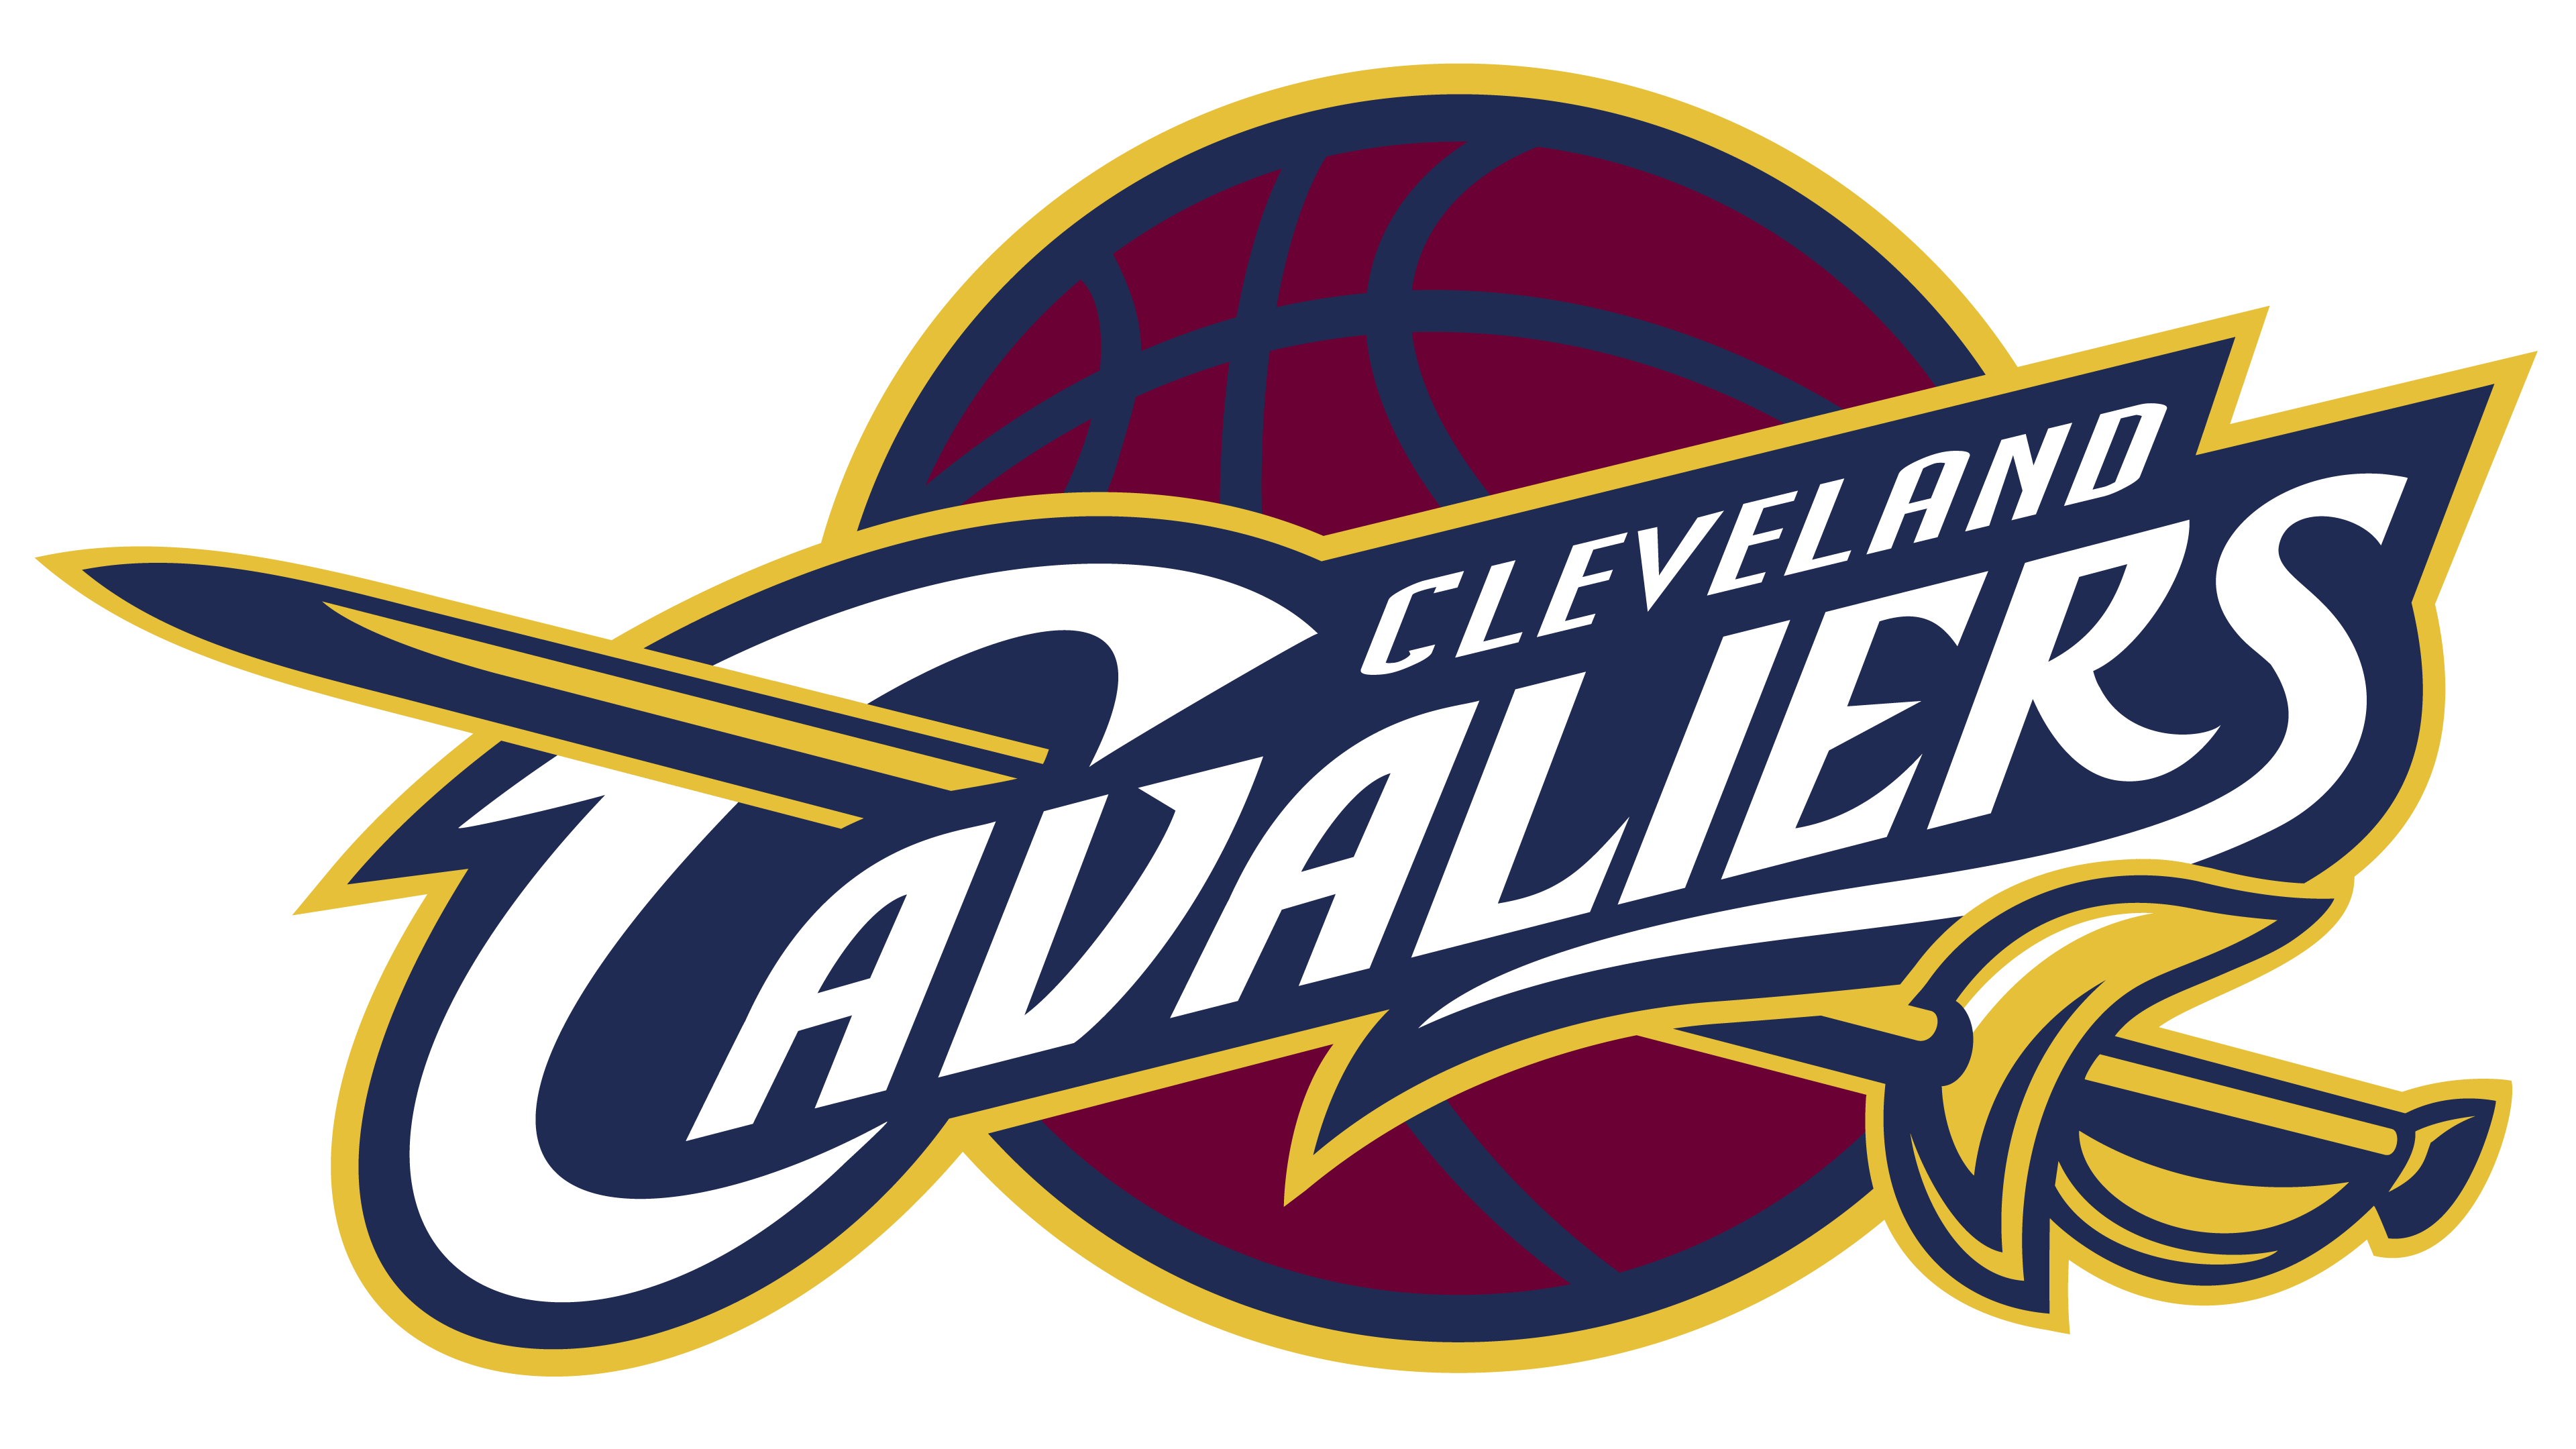 Vector ohio cleveland. Cavaliers logo interesting history